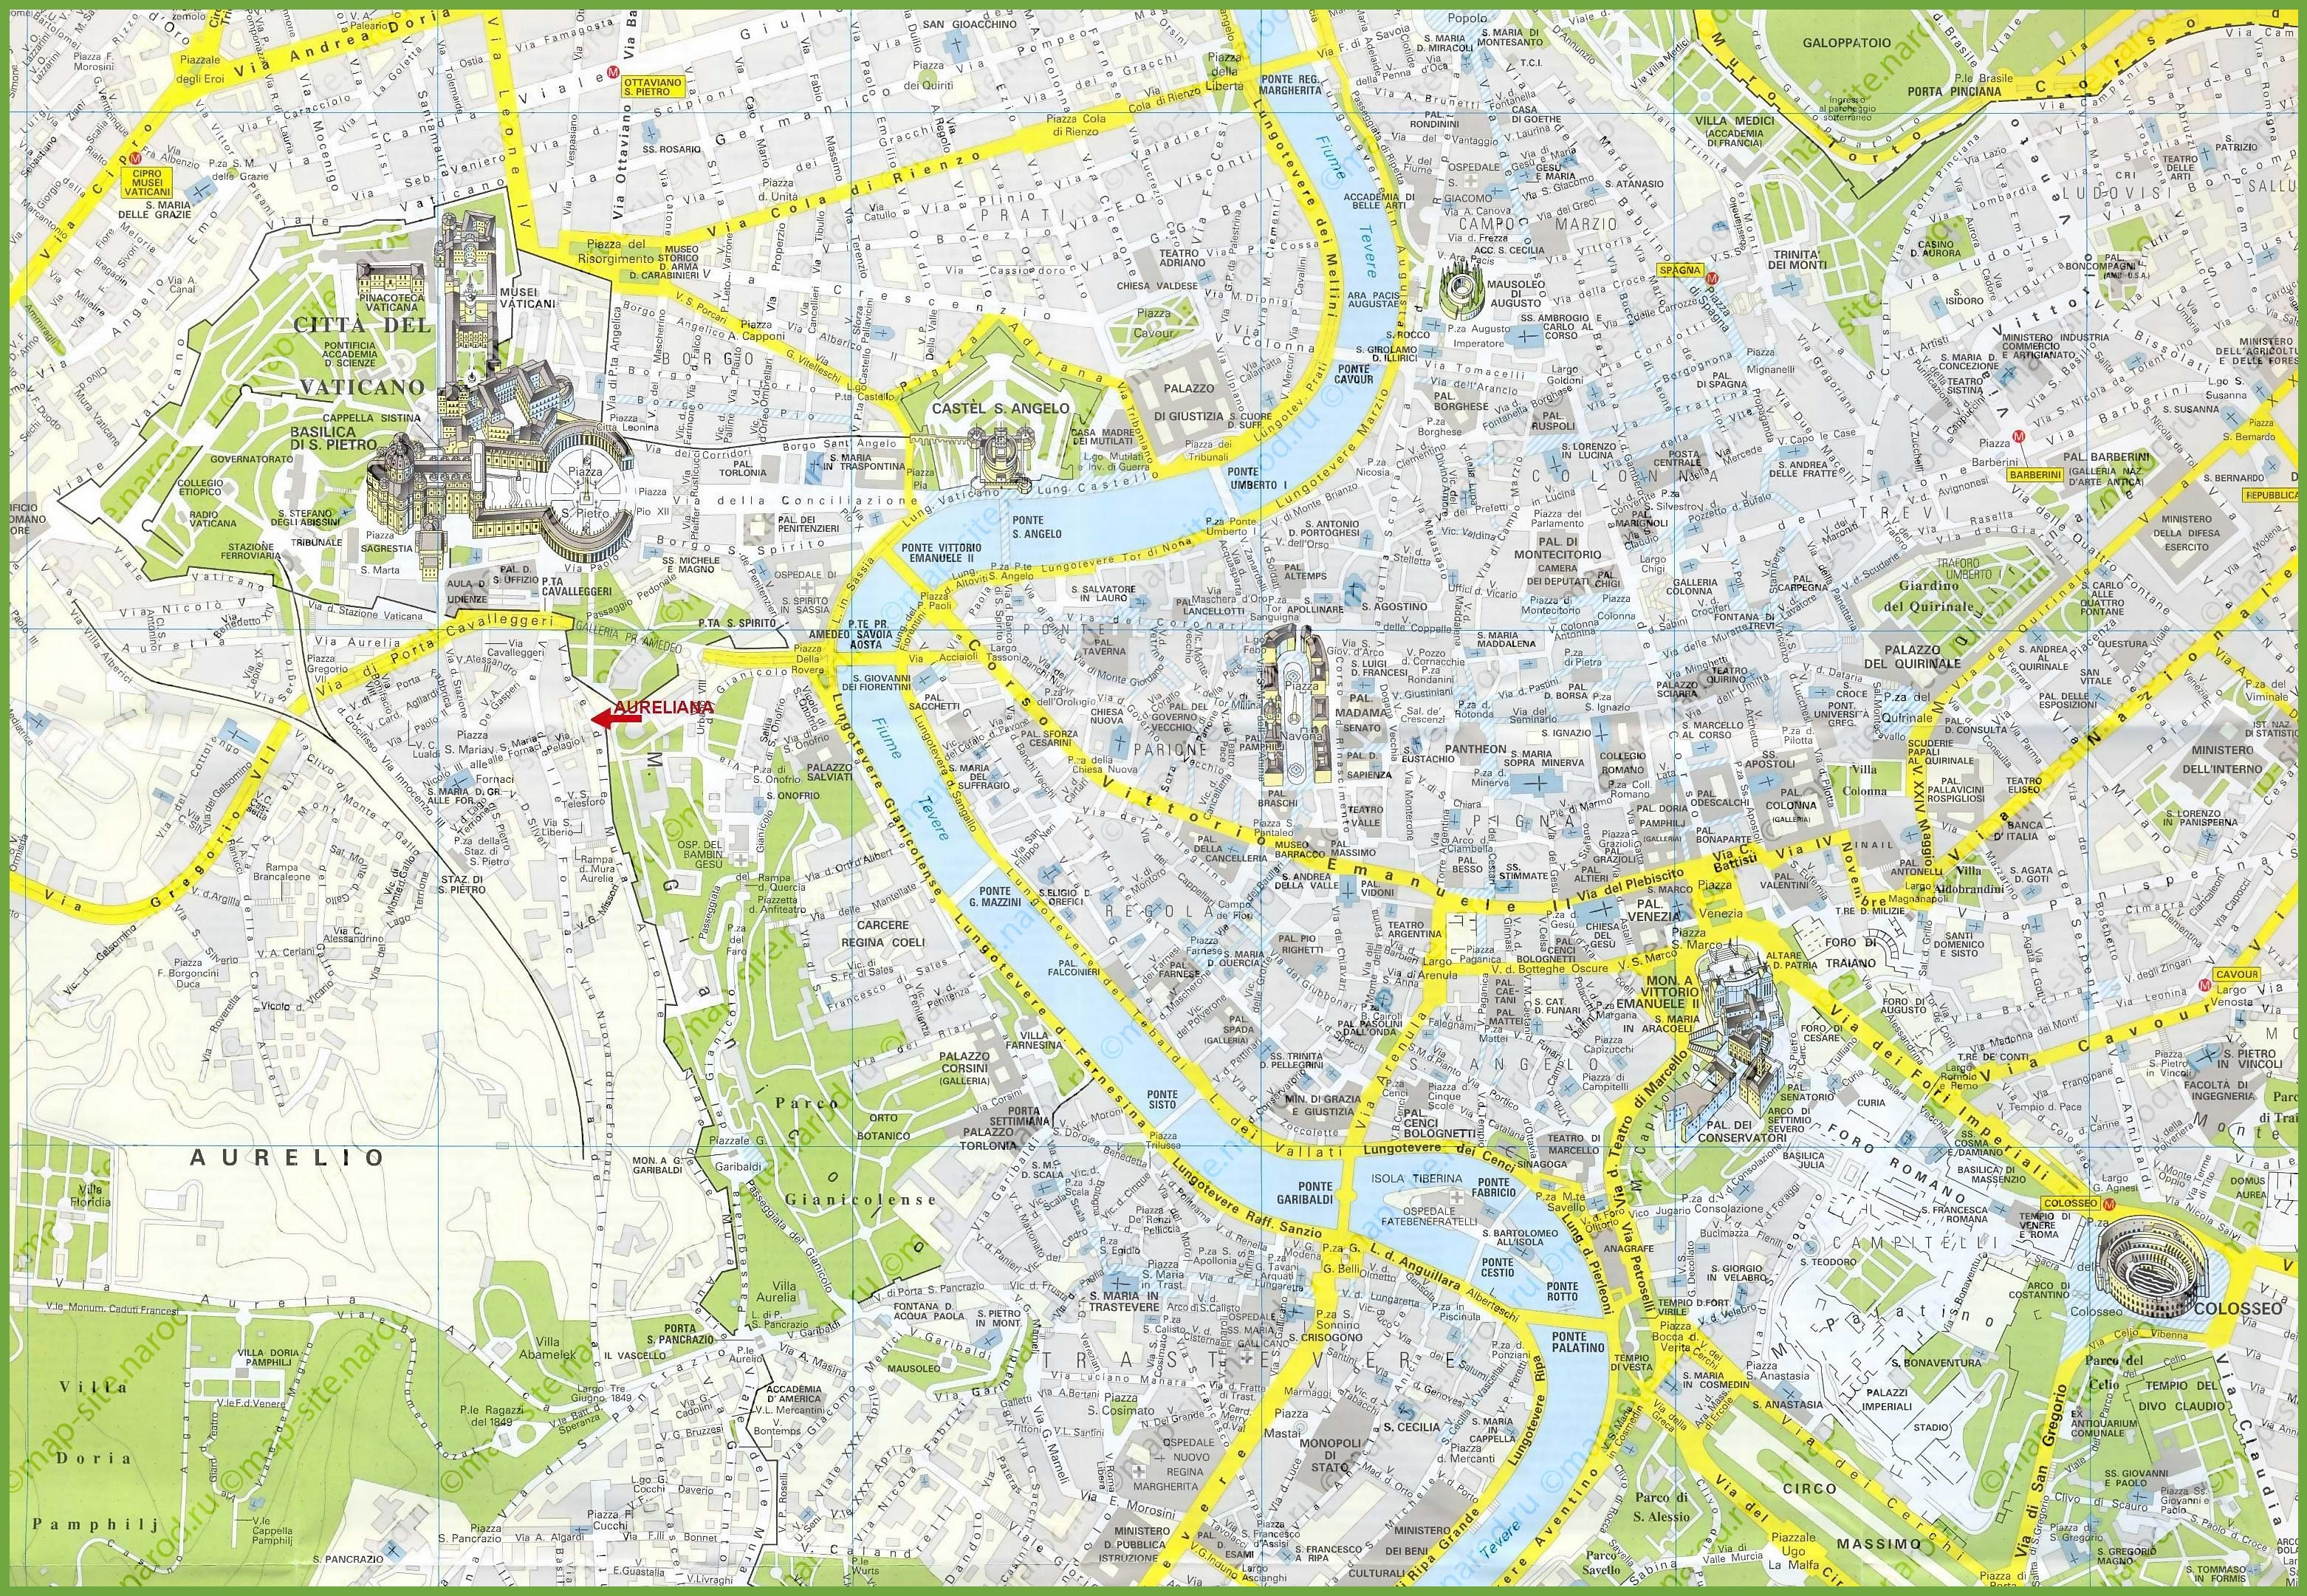 Rome tourist attractions map – Map Of Rome Tourist Attractions